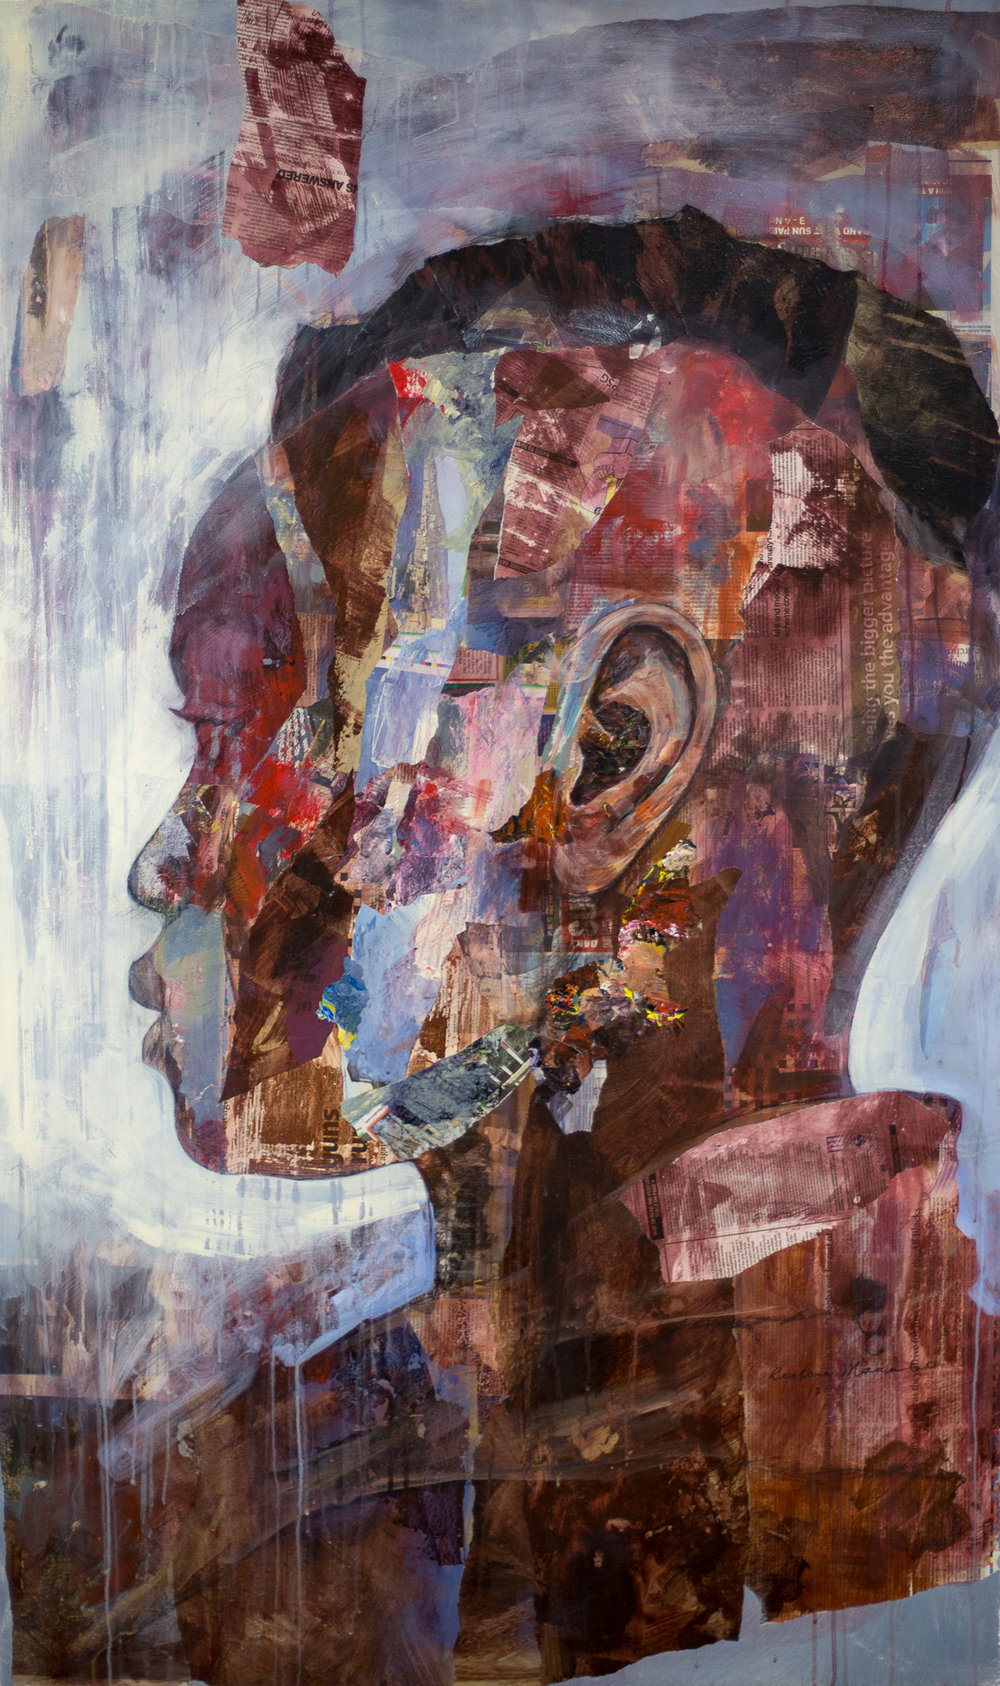 ' Attending Function'   Restone Maambo  Mixed media and collage on canvas  1520 x 910 x 35 mm  R 38 000. 00 excl. vat